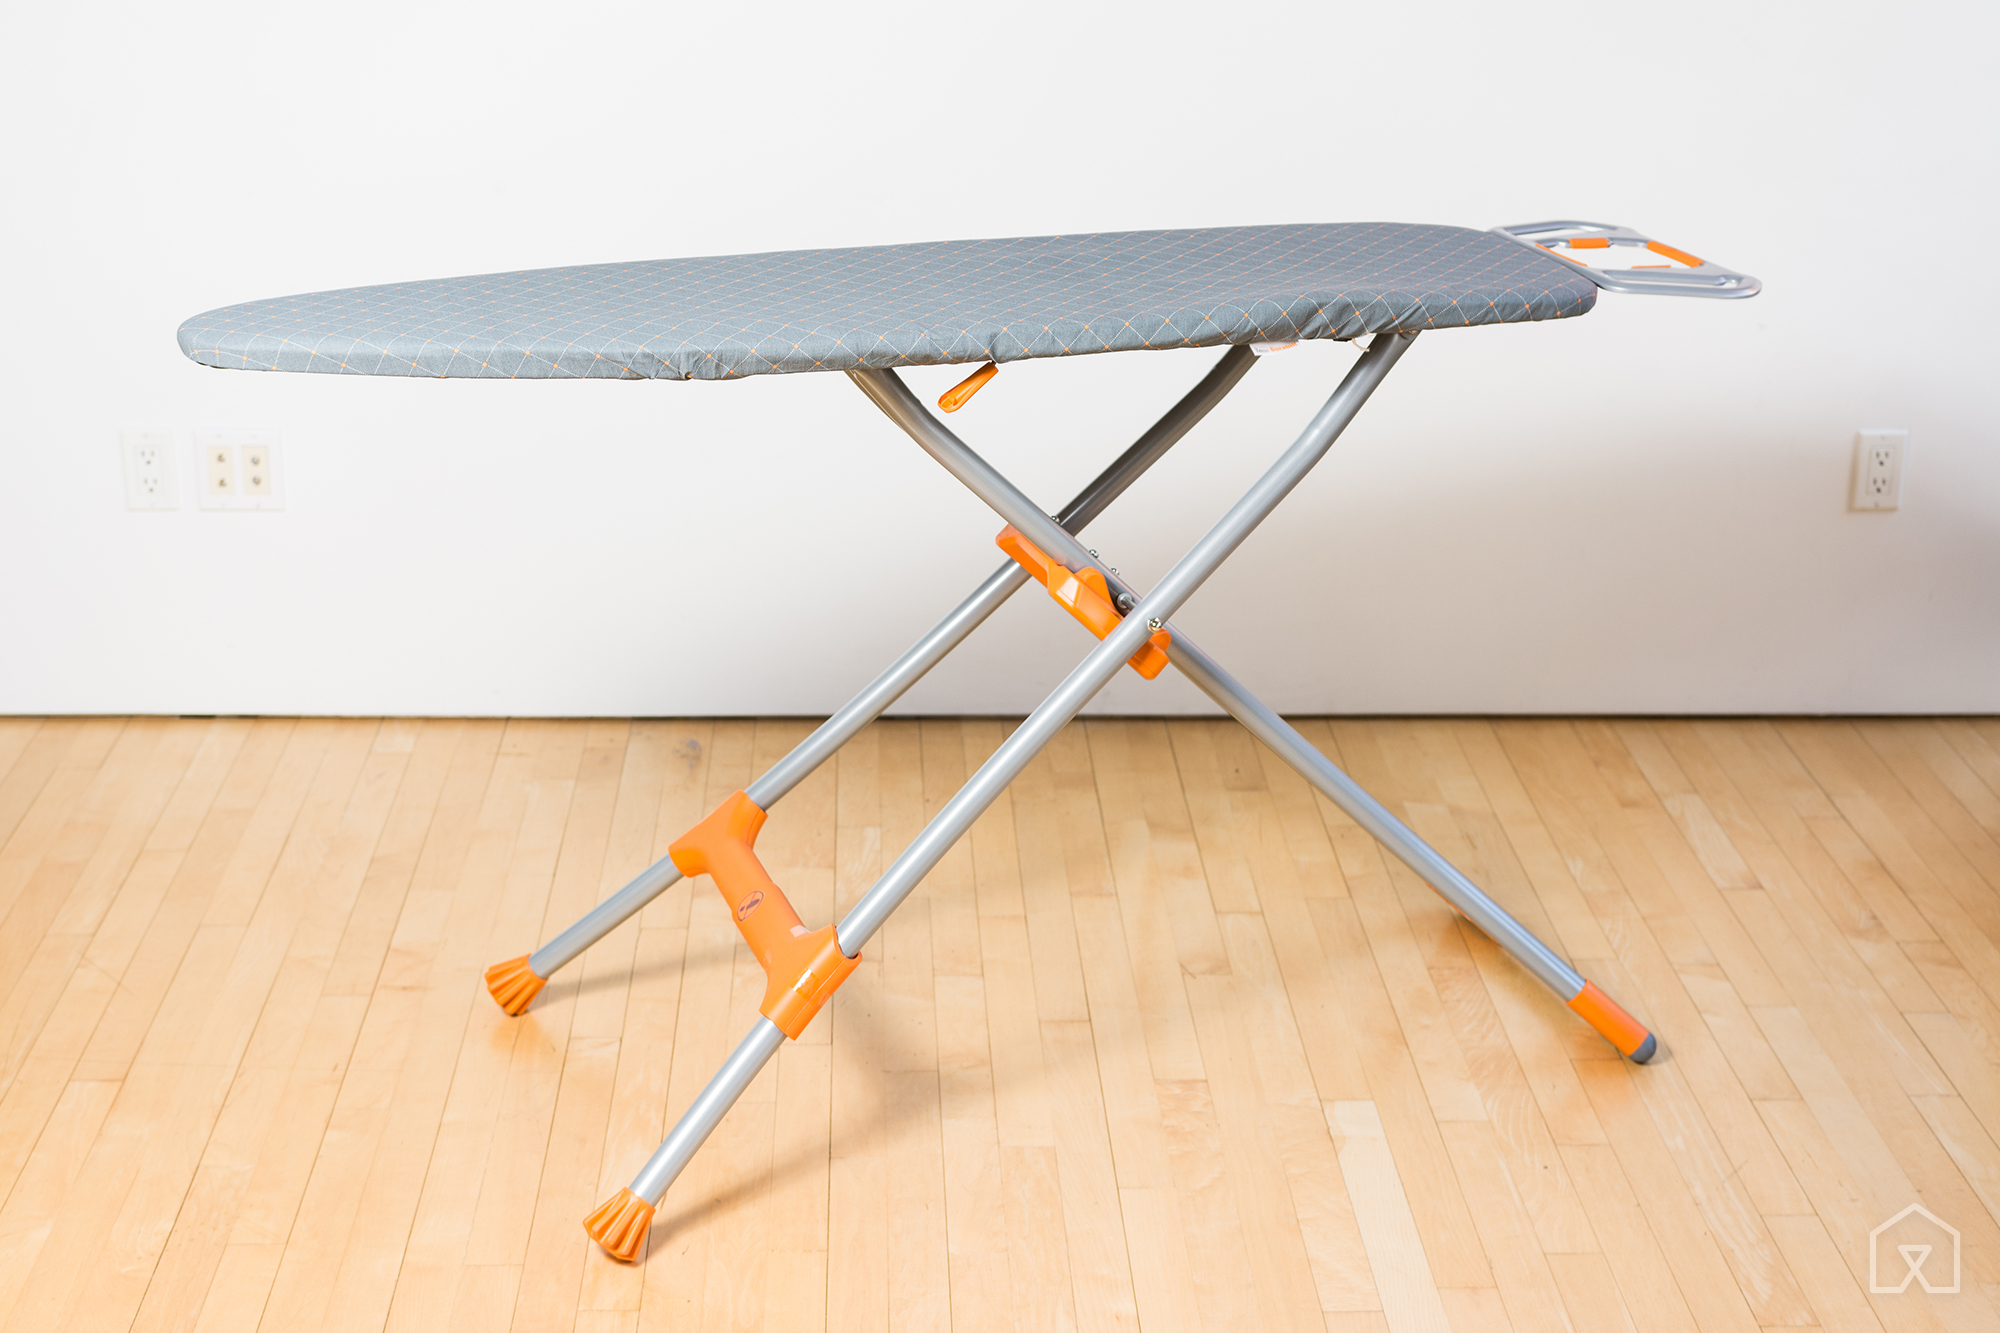 The best clothing iron and ironing board